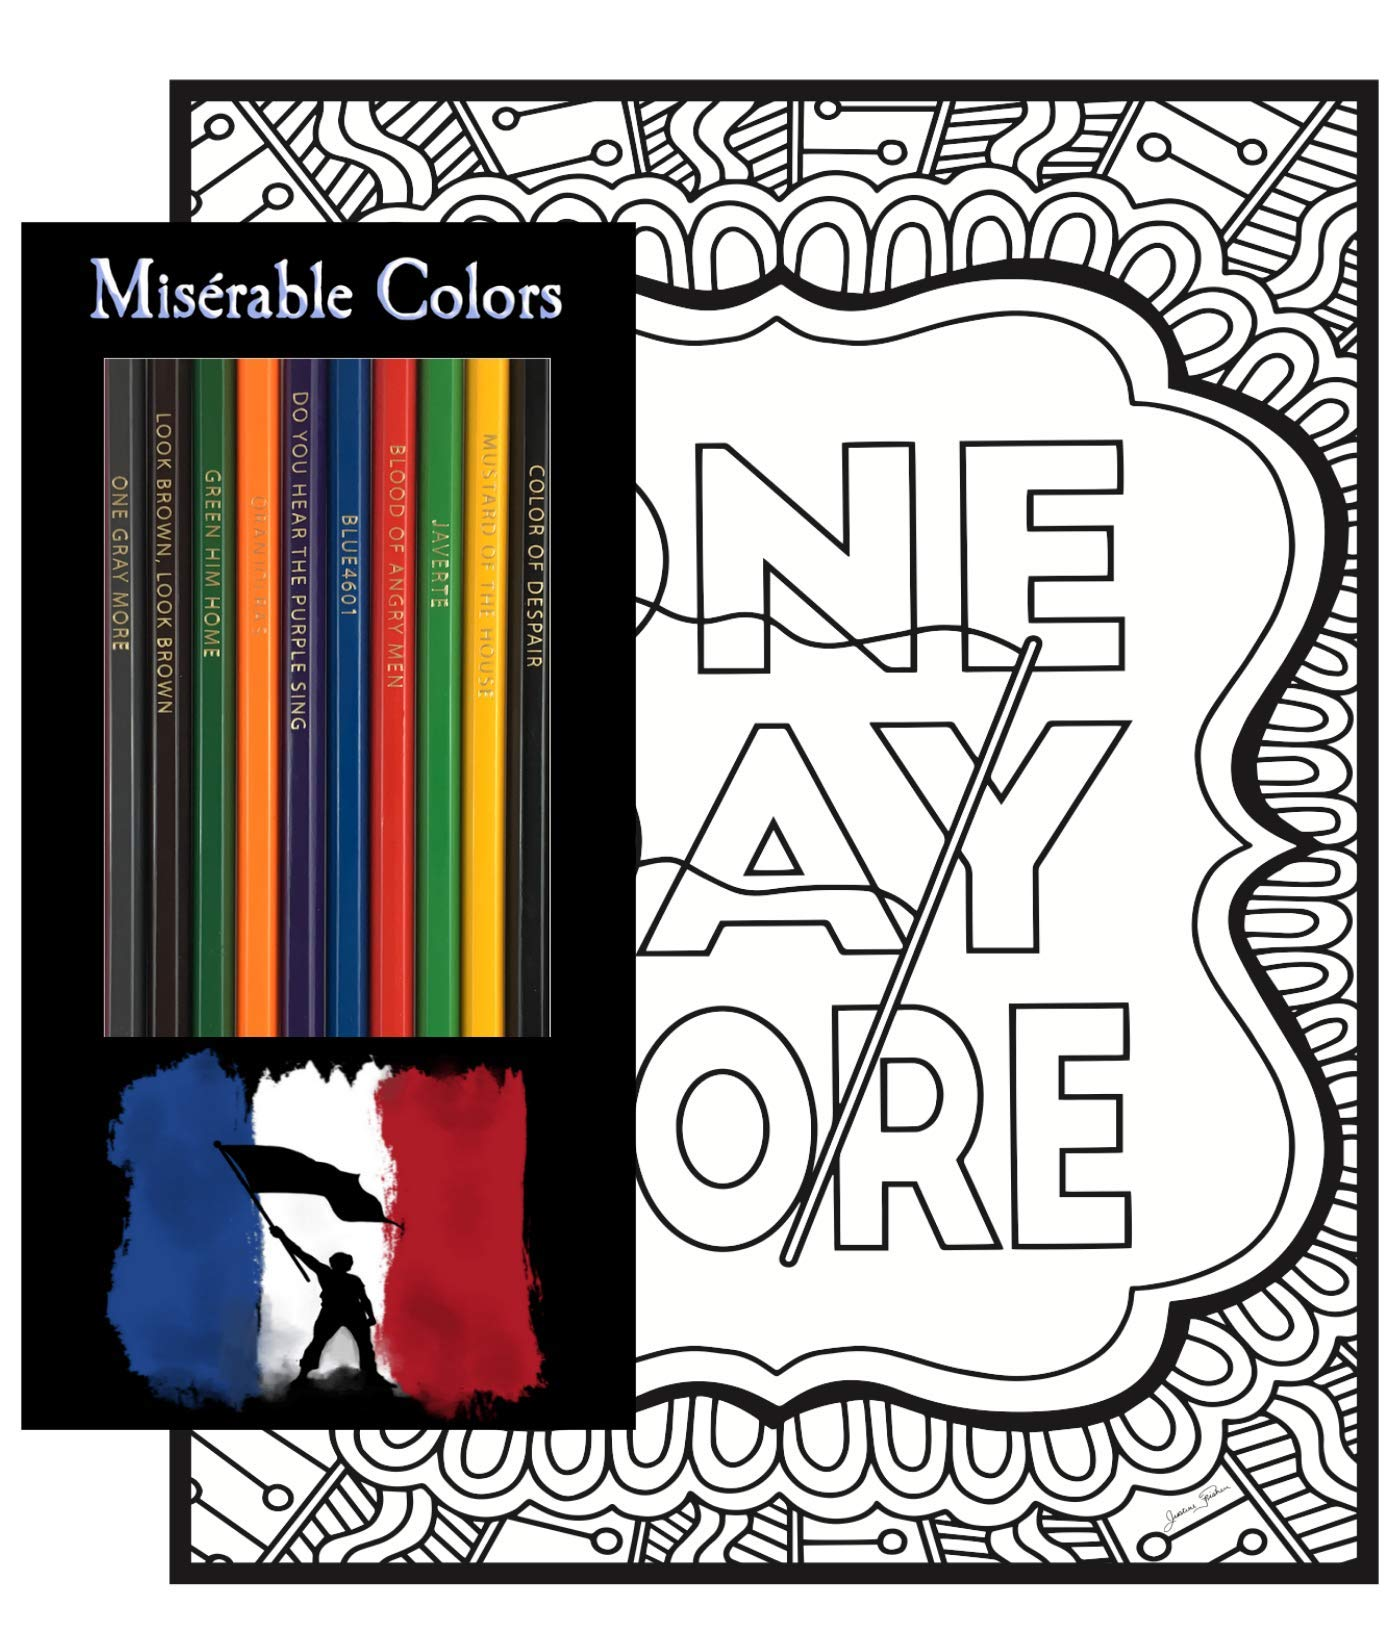 Les Misérables Coloring Gift Set - 12 Musical Themed Colored Pencils and Pack of 4 Coloring Pages by Theatre Nerds